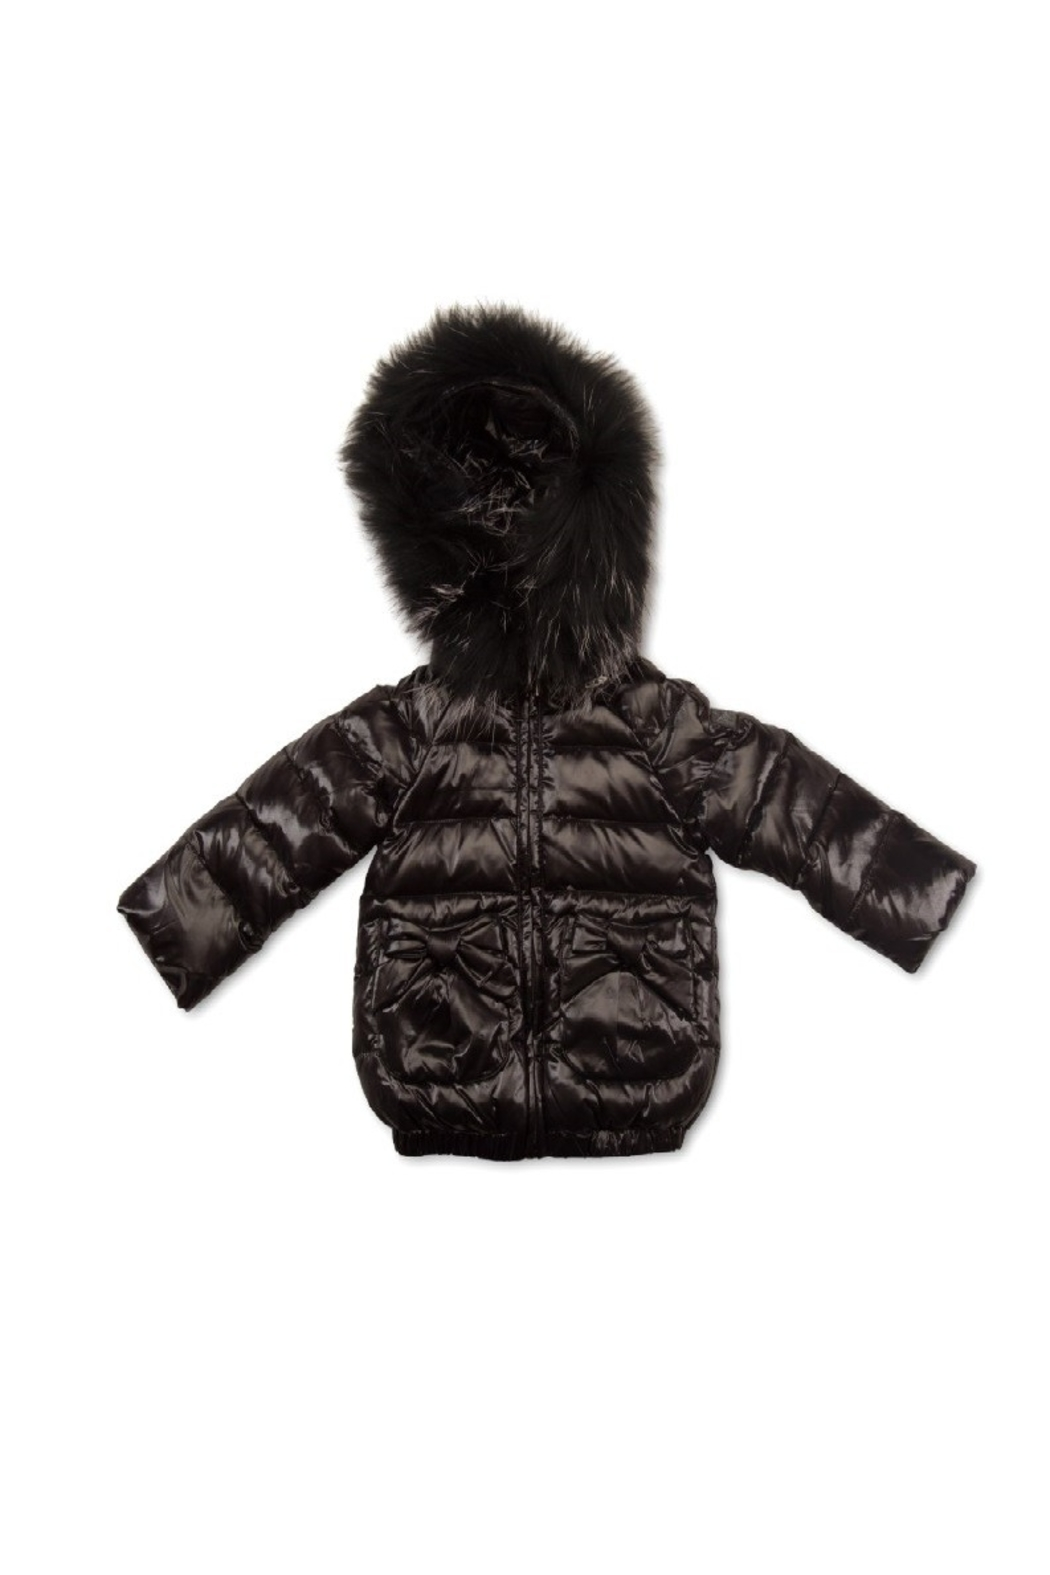 PRAMIE Pramie Down Filled Jacket with Bow Pockets for Girls | Winterwear Clothes - Main Image